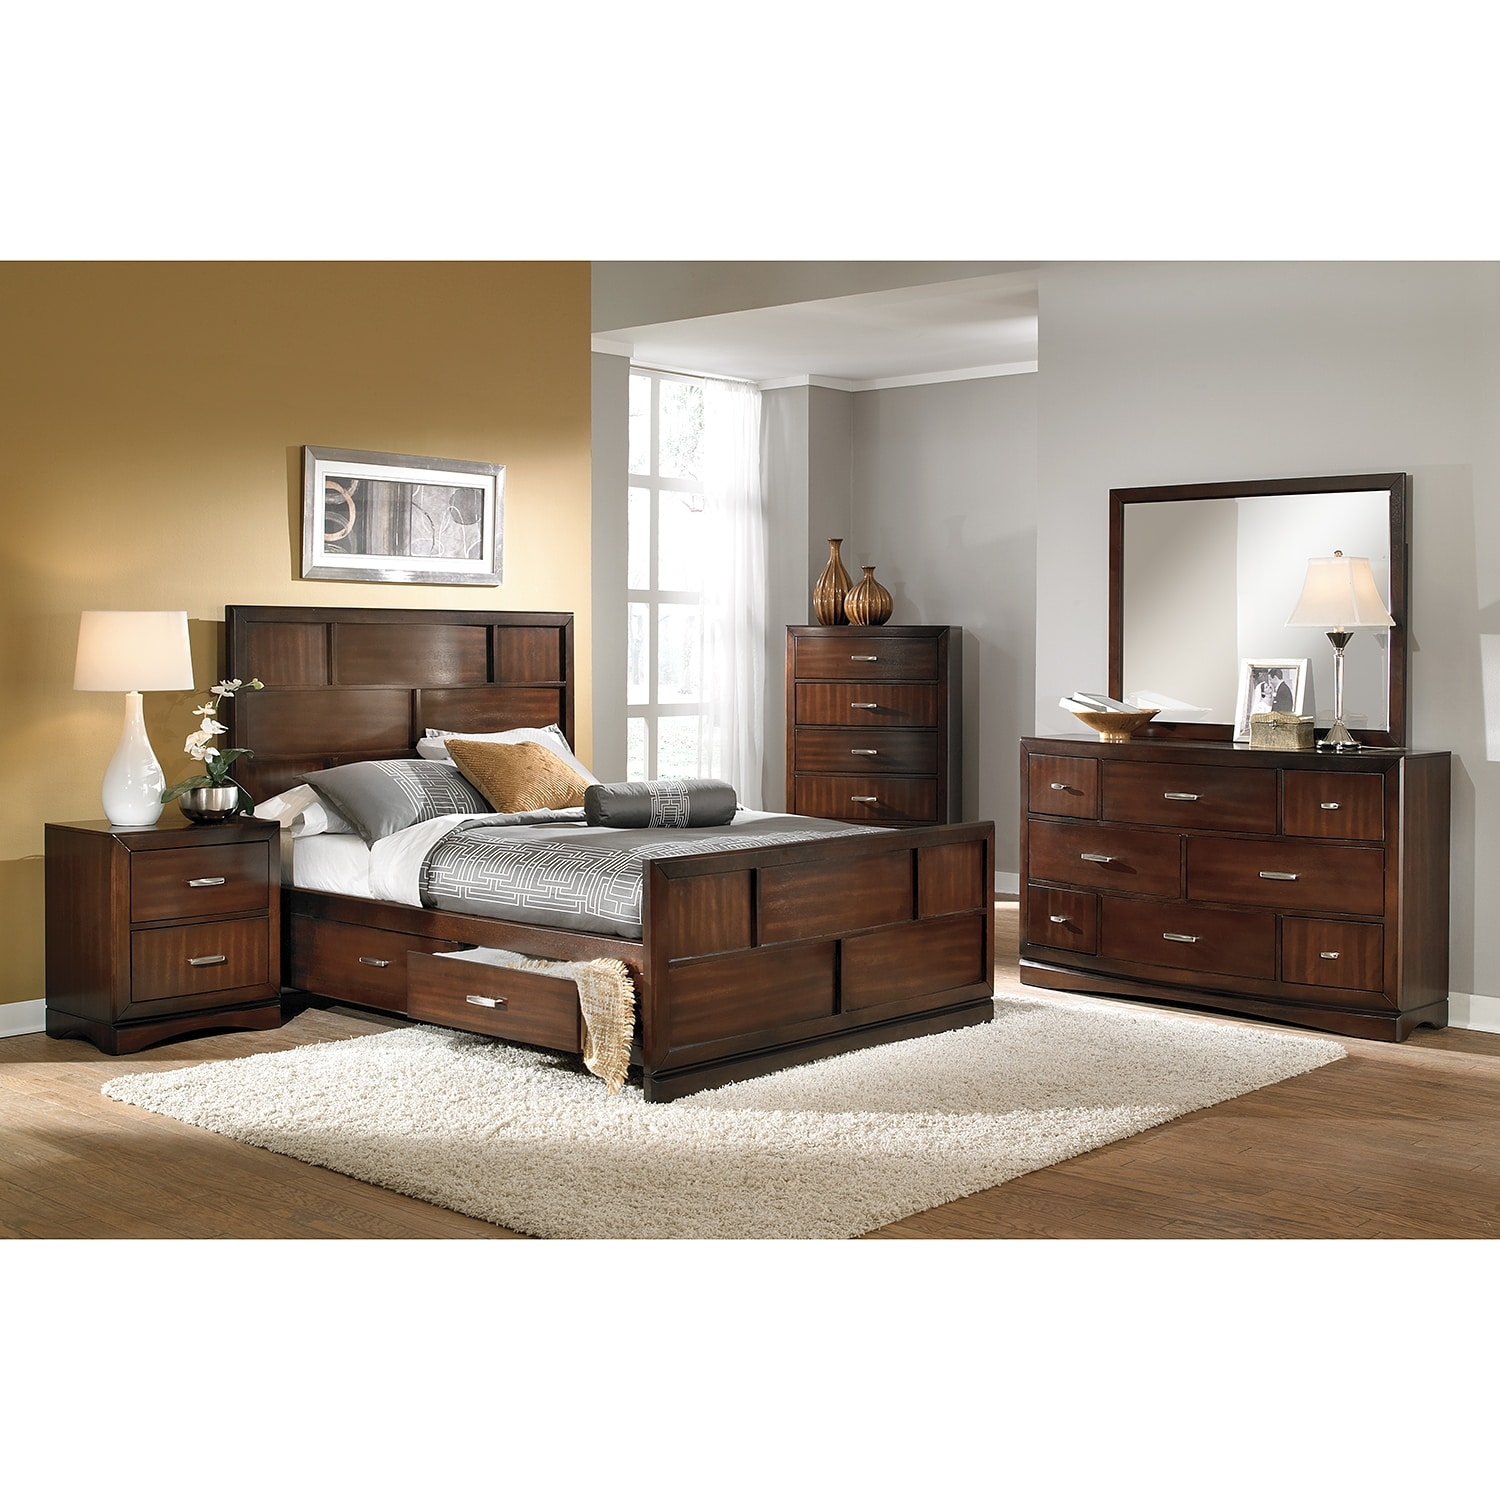 Furniture Com: Toronto Pecan Storage Bed